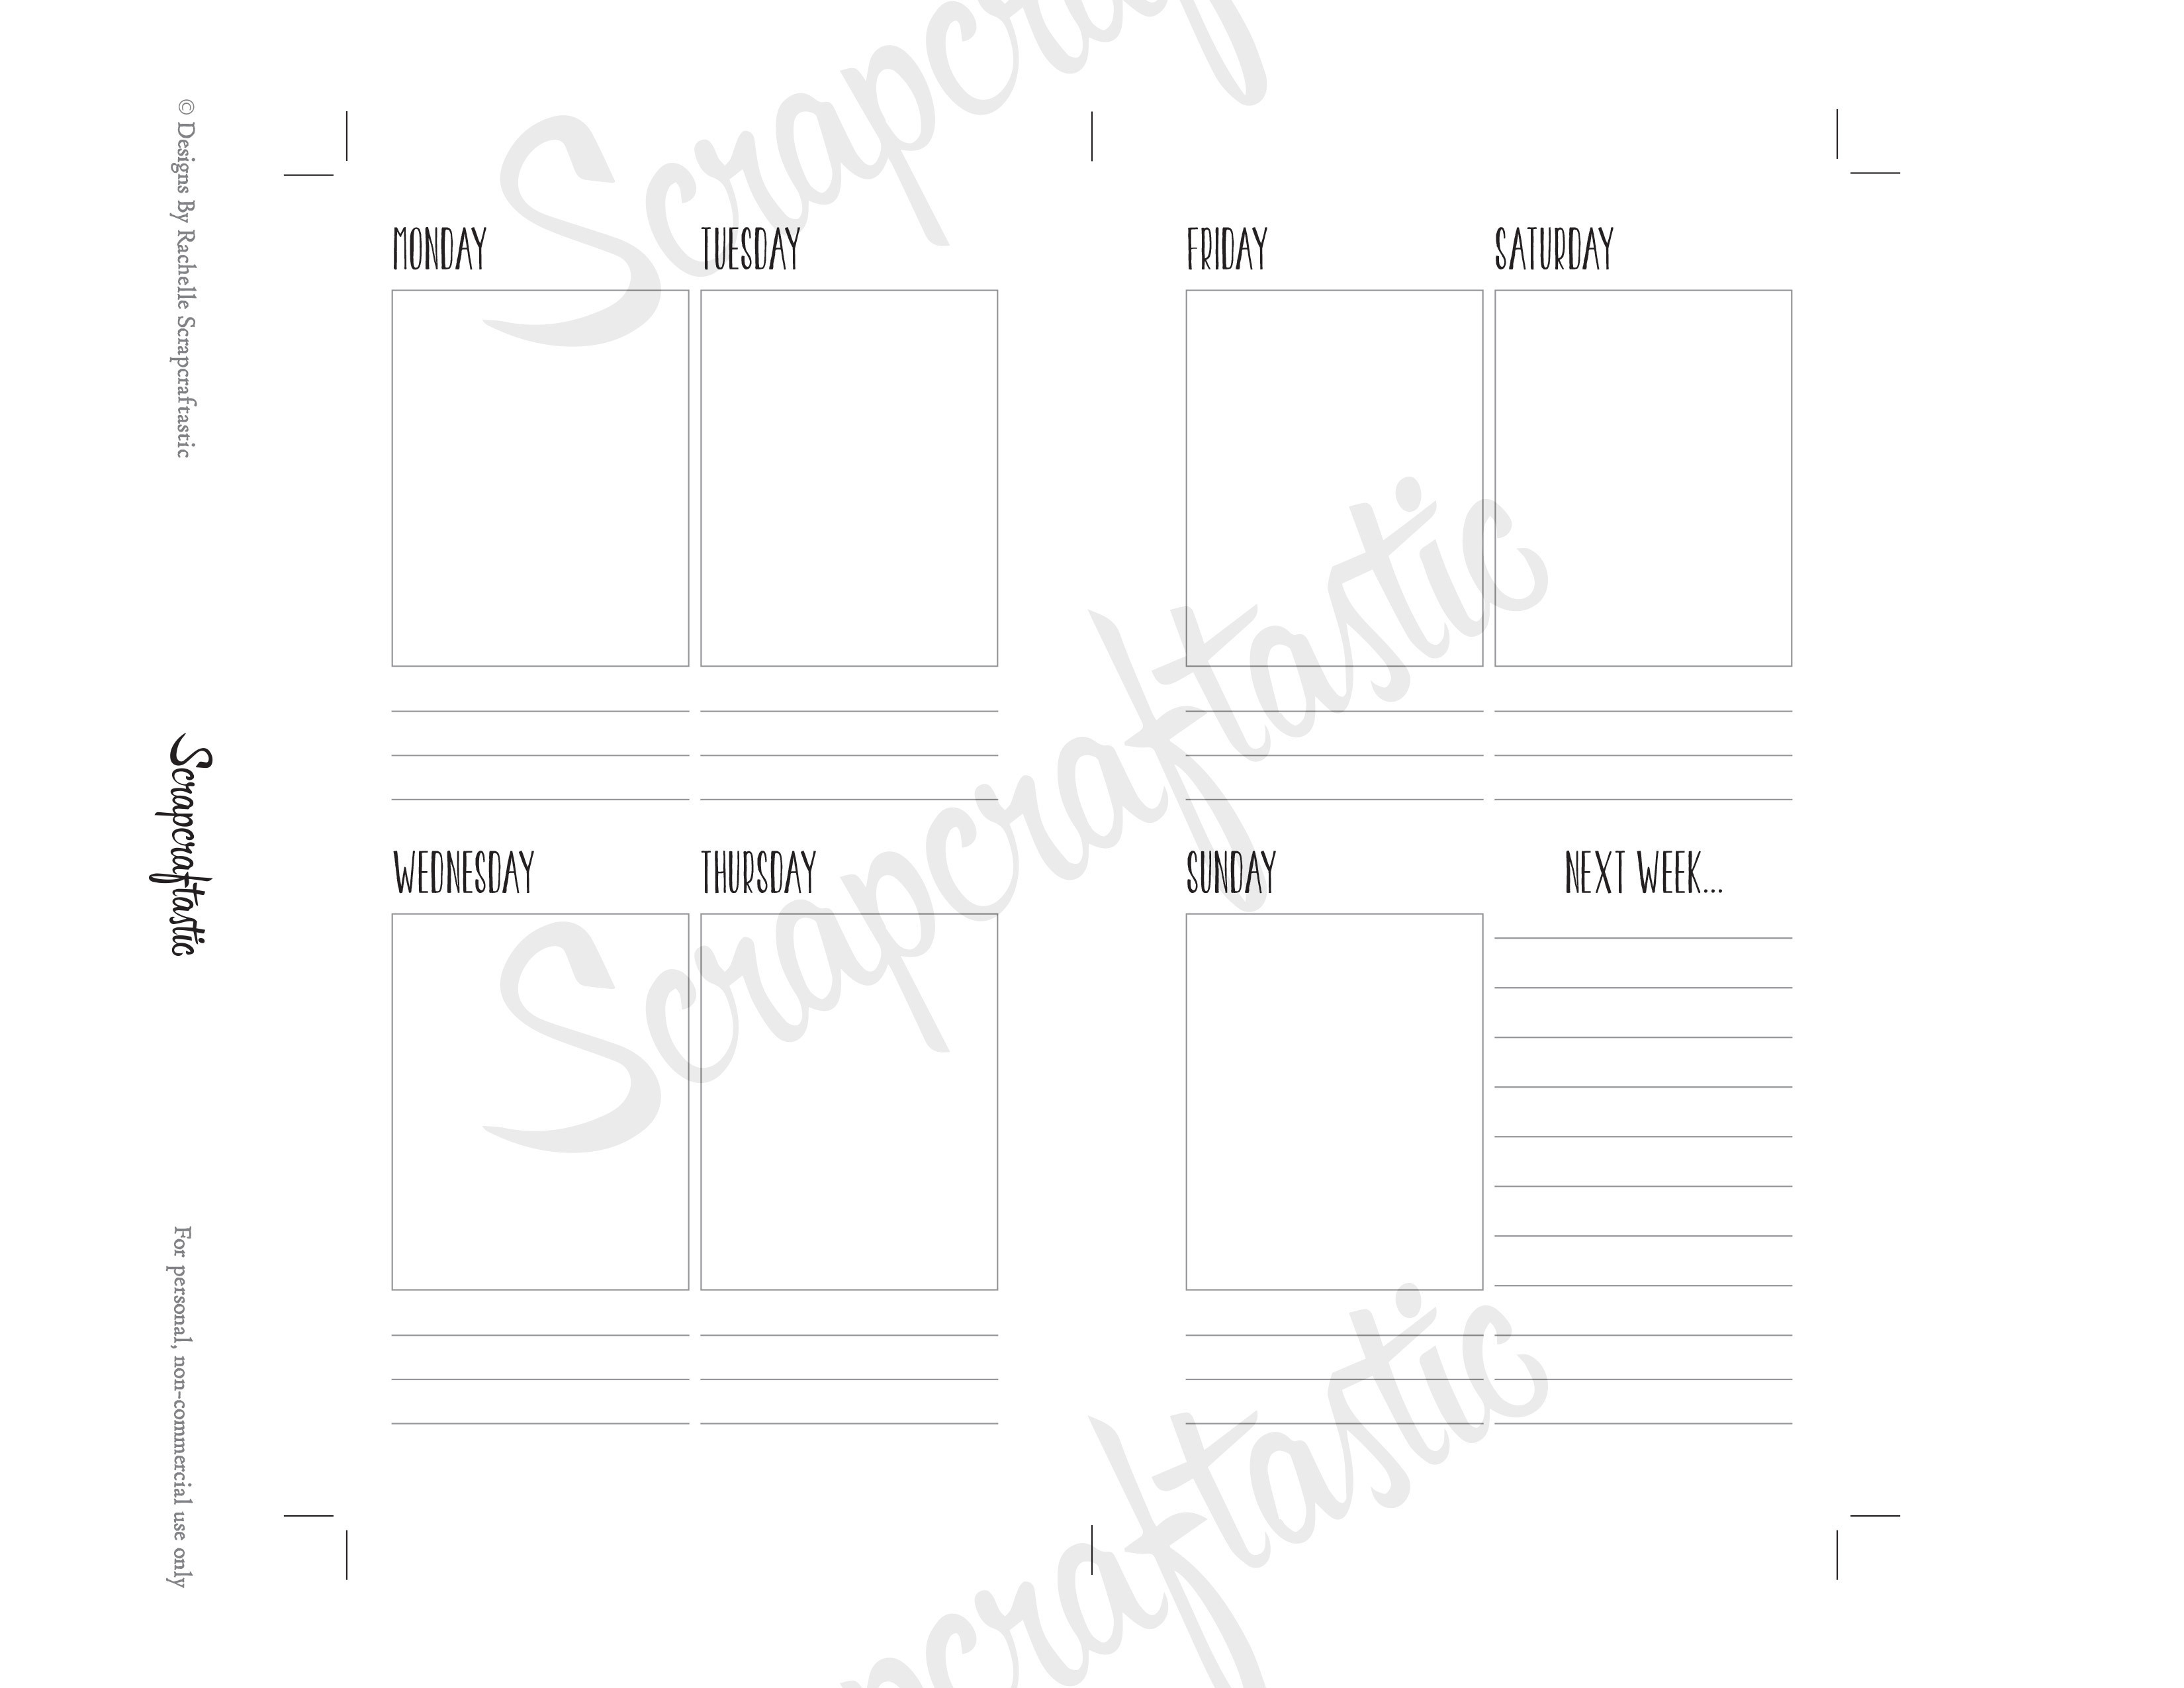 Planner Printable Insert Refill Undated WO2P Personal Size - Filofax Kikki K ColorCrush Erin Condren Size Full Boxes & Next Week